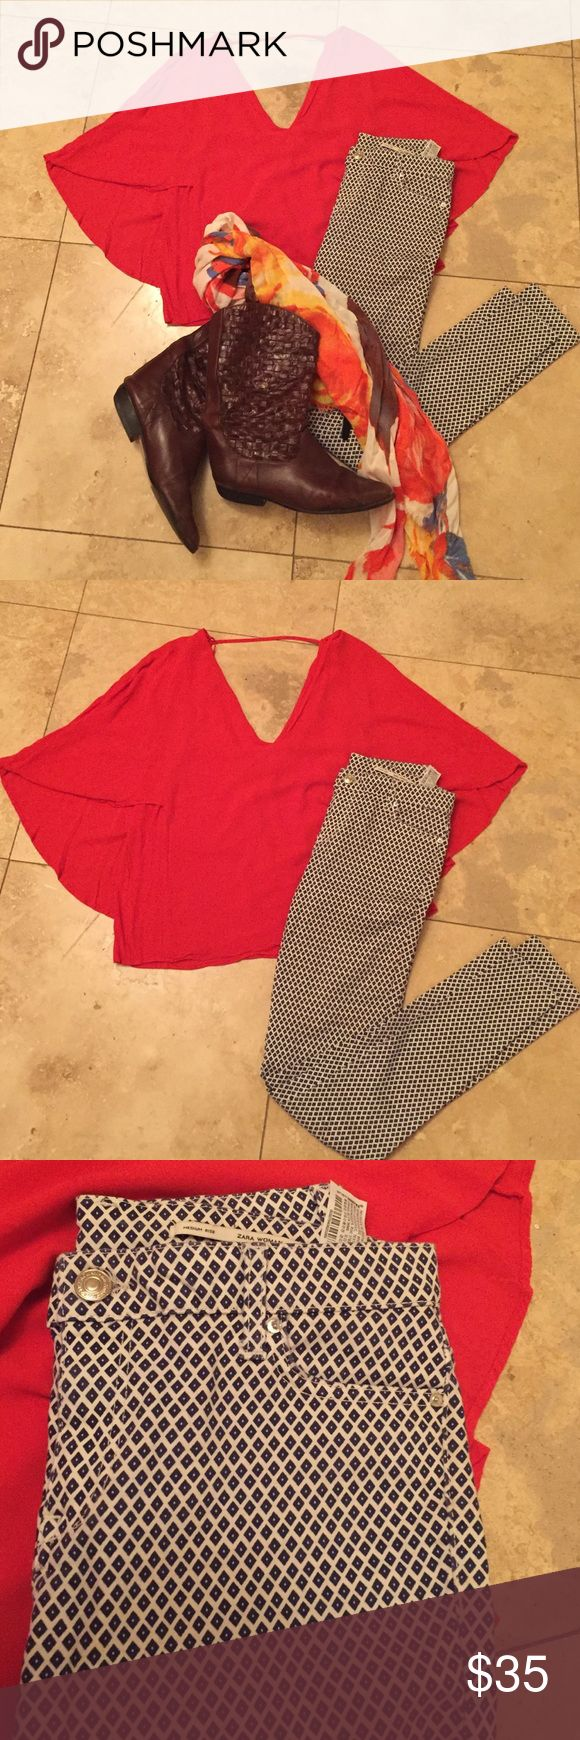 Zara orange batwing crop top & blue pattern pants Excellent used condition, purchased in Canada. Size 4 navy/white pants and small orange top. Zara Other